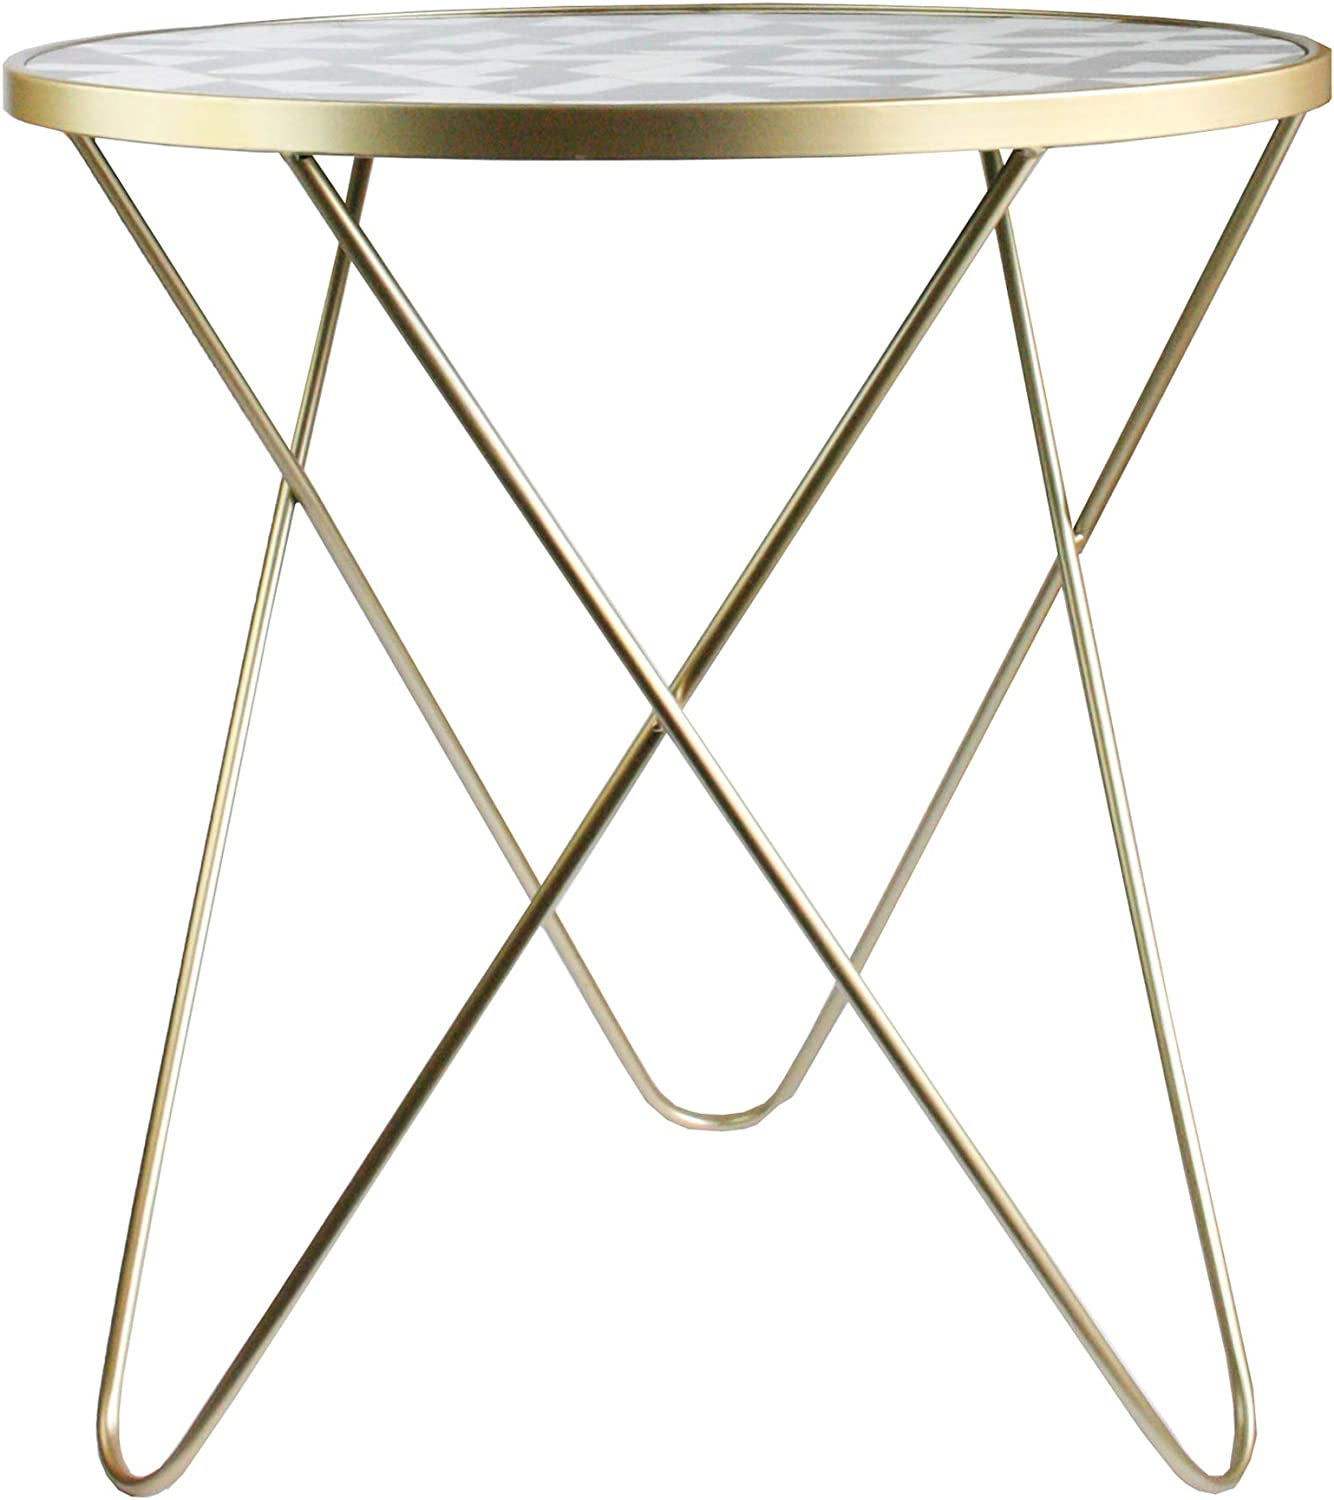 Geometric Pattern Emartbuy Set of 2 Modern Round Gold Metal Side Coffee Table Bedside Nightstand Kitchen Living Room Balcony Table